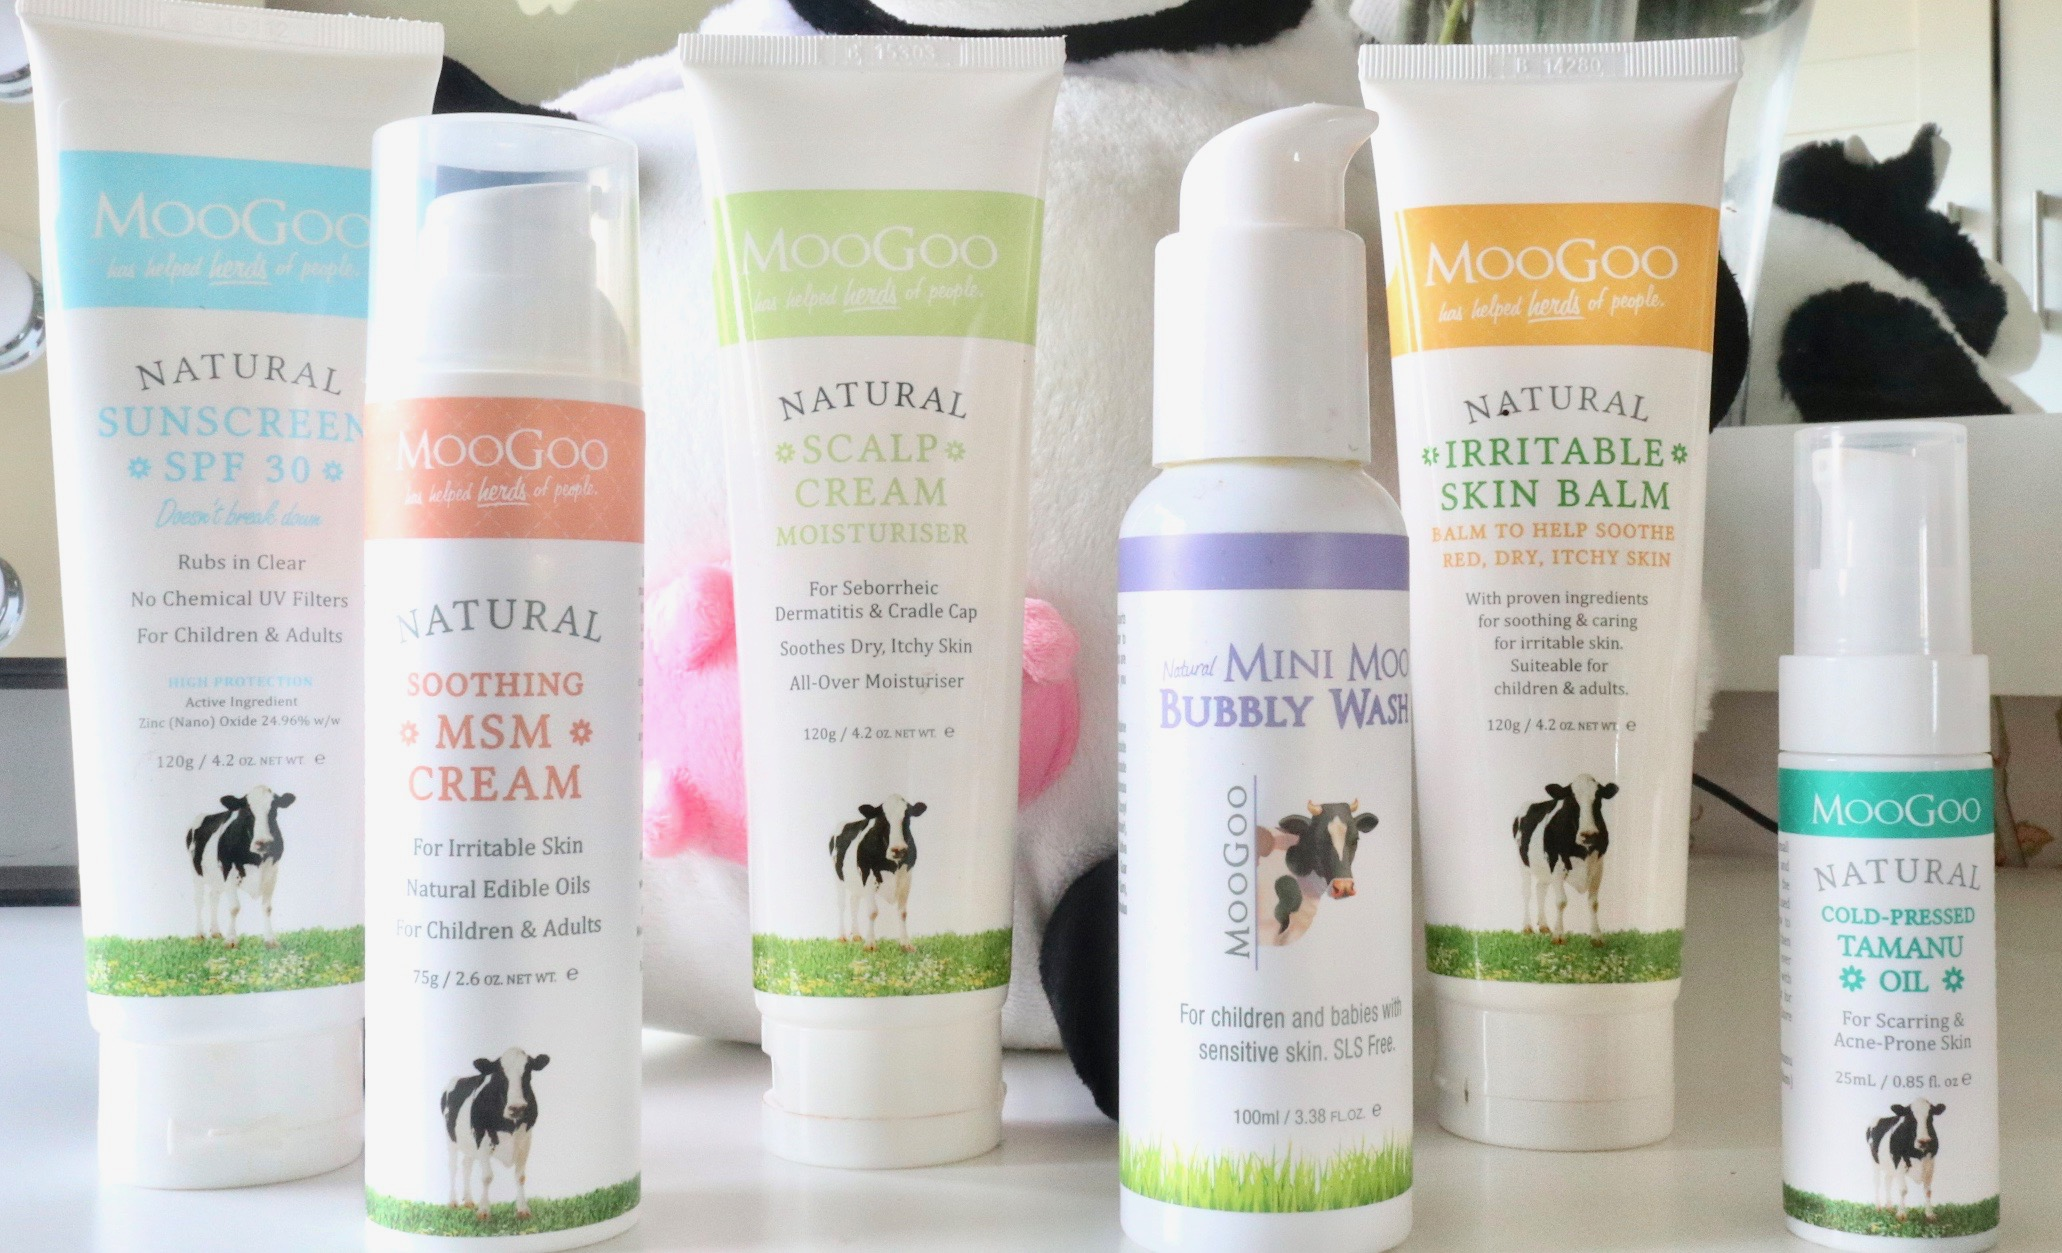 What you need from Moogoo Ireland - The Beautiful Truth